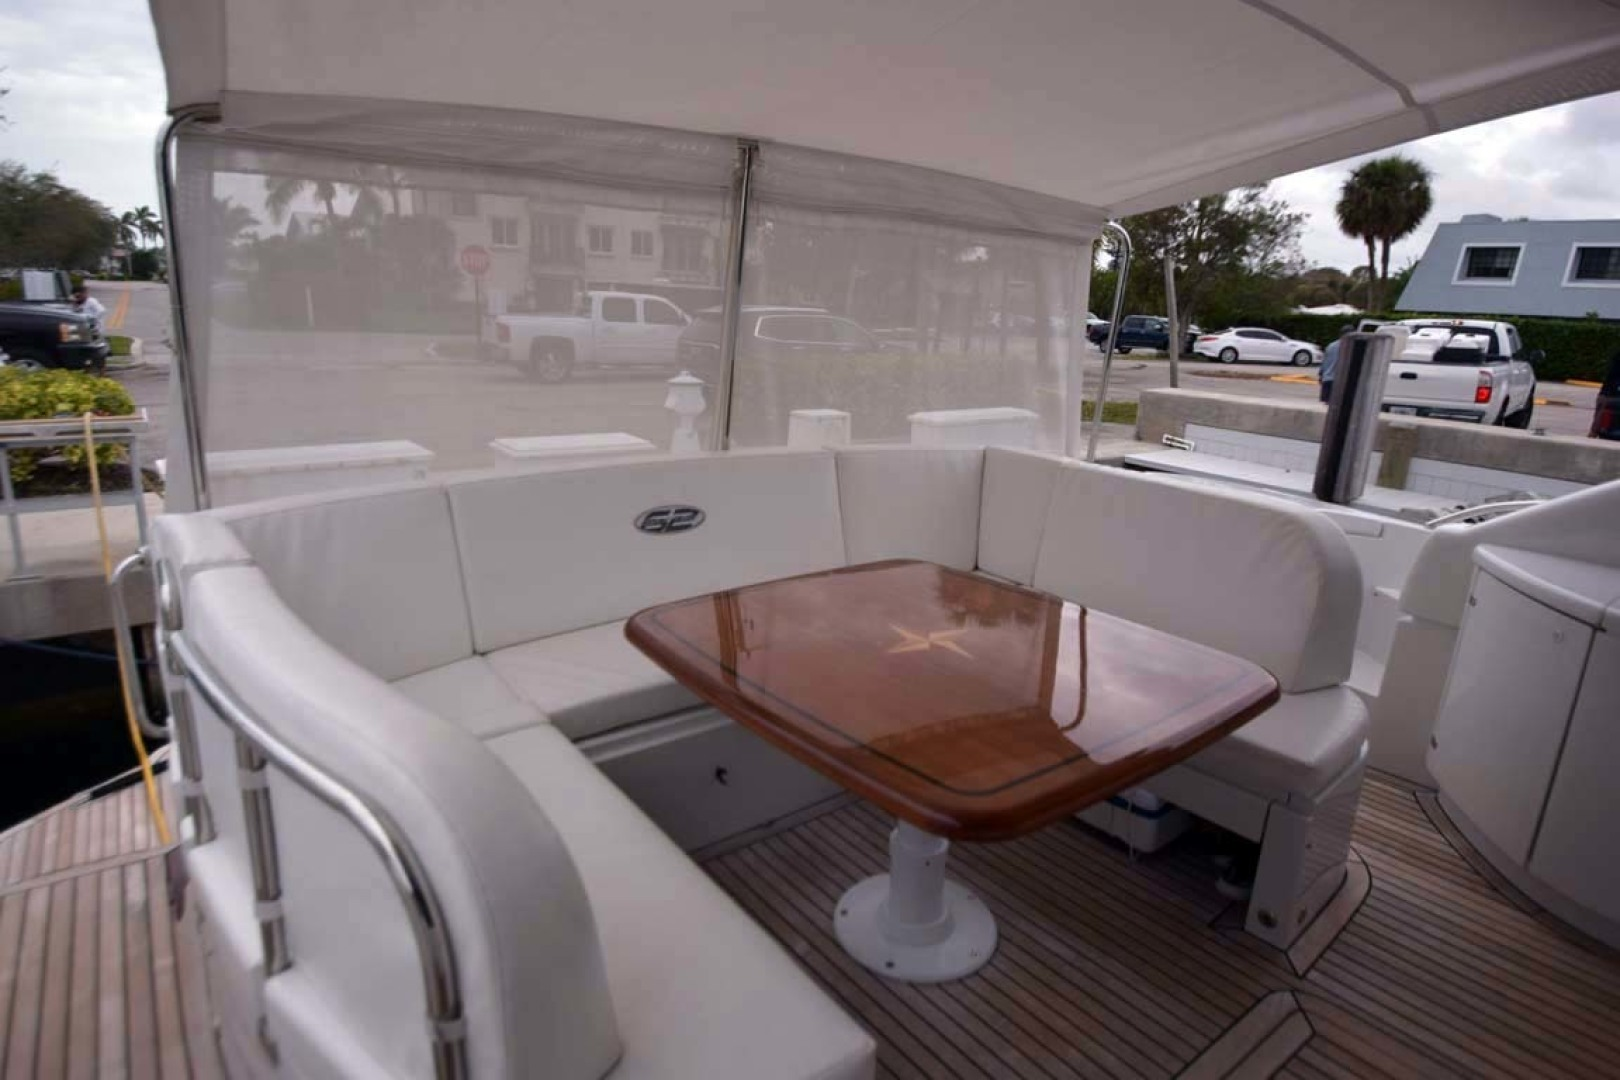 Pershing-62 2007-CHOPIN Lighthouse Point-Florida-United States Aft Deck Dining From STBD Side-1625743 | Thumbnail